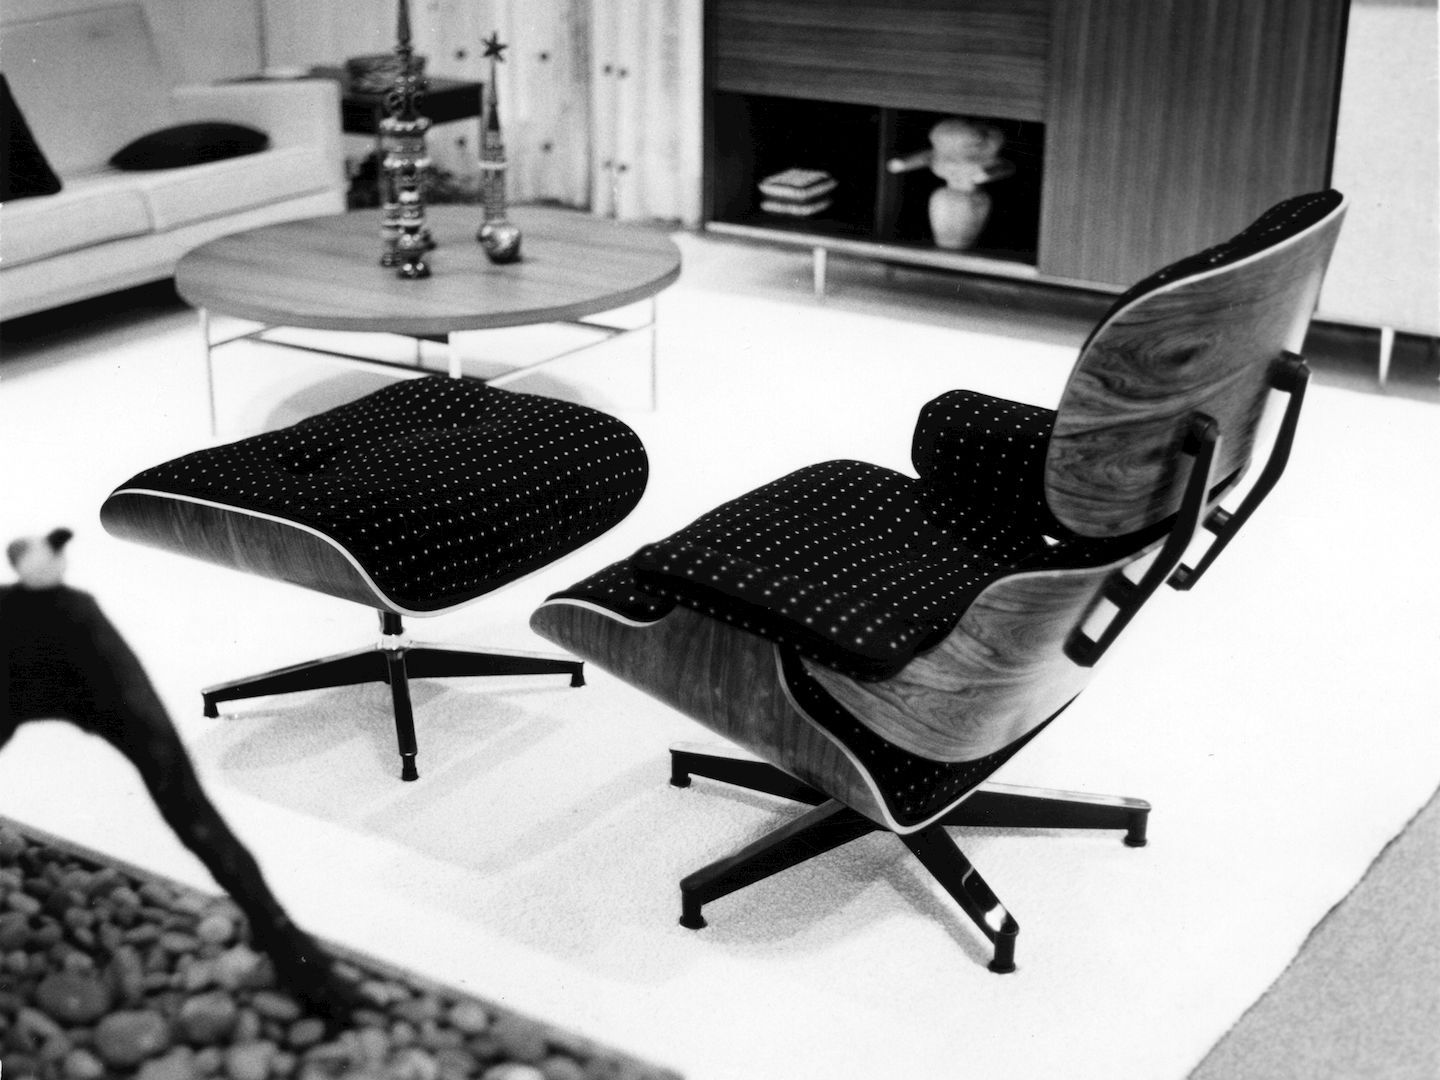 Eames Lounge Chair And Ottoman In Fabric Vitra Image C Eames Office Llc Eames Lounge Chair Chair Fabric Chair